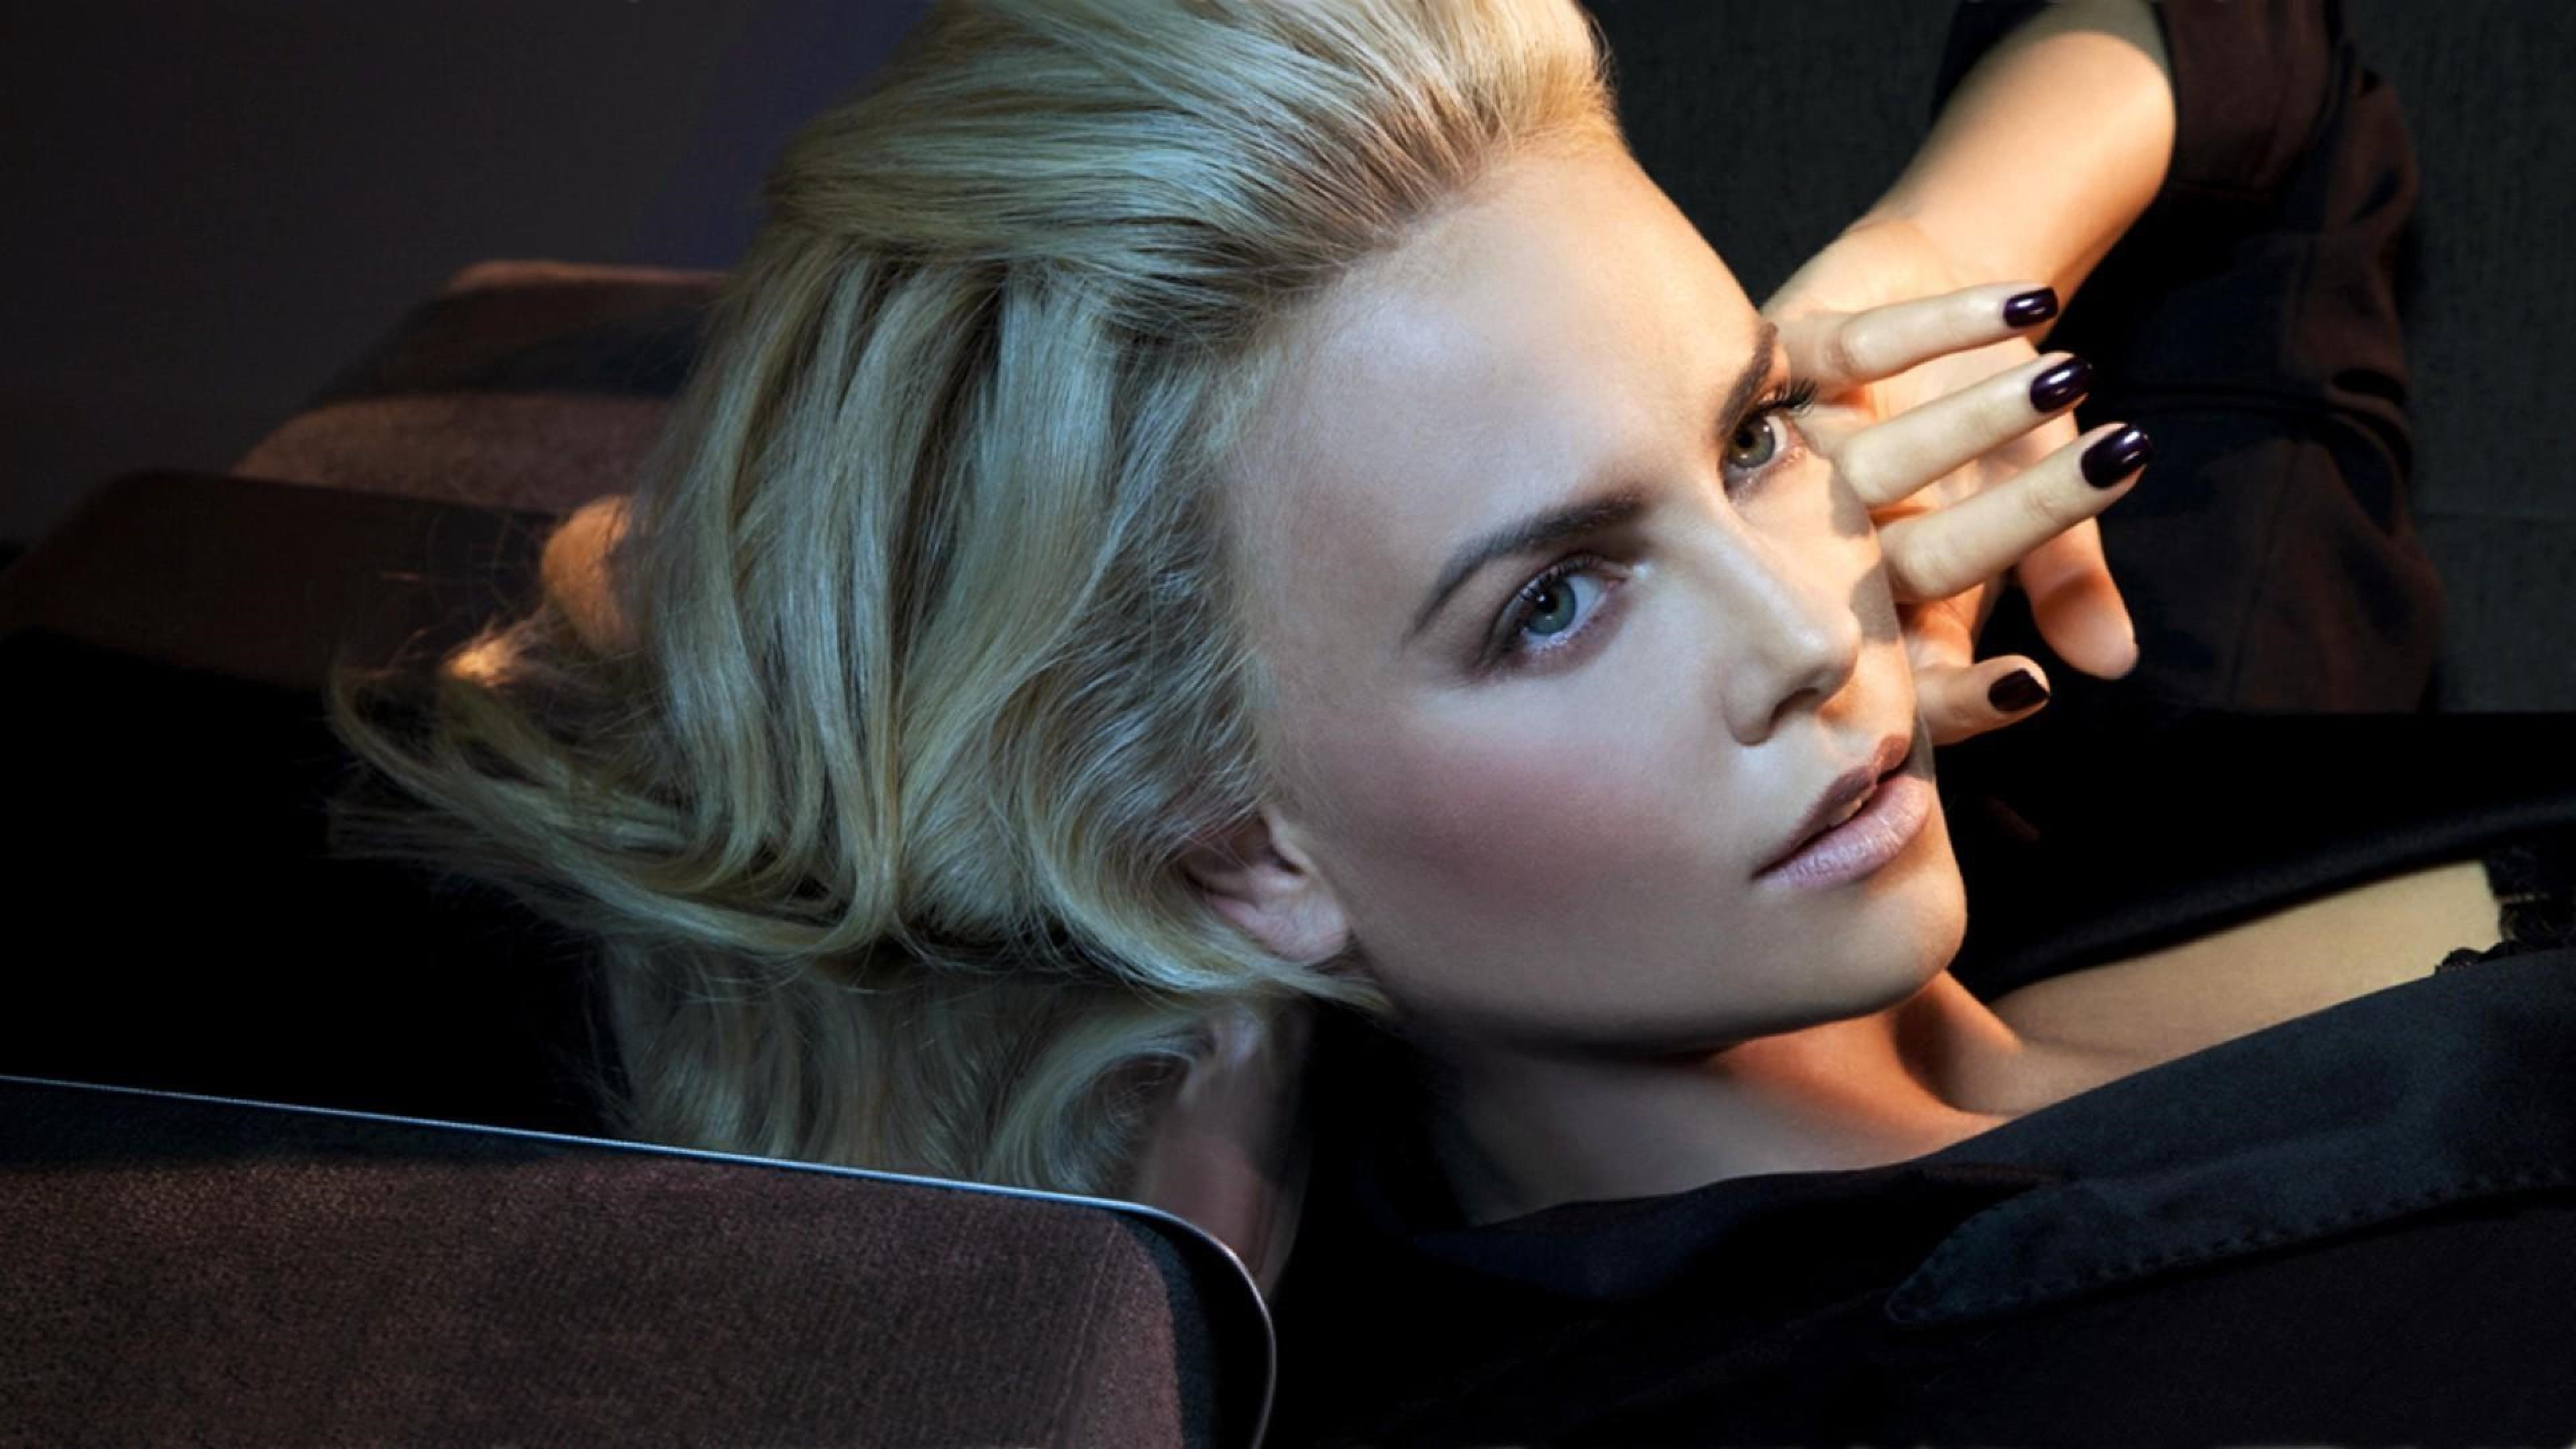 3840x2160 - Charlize Theron Wallpapers 21